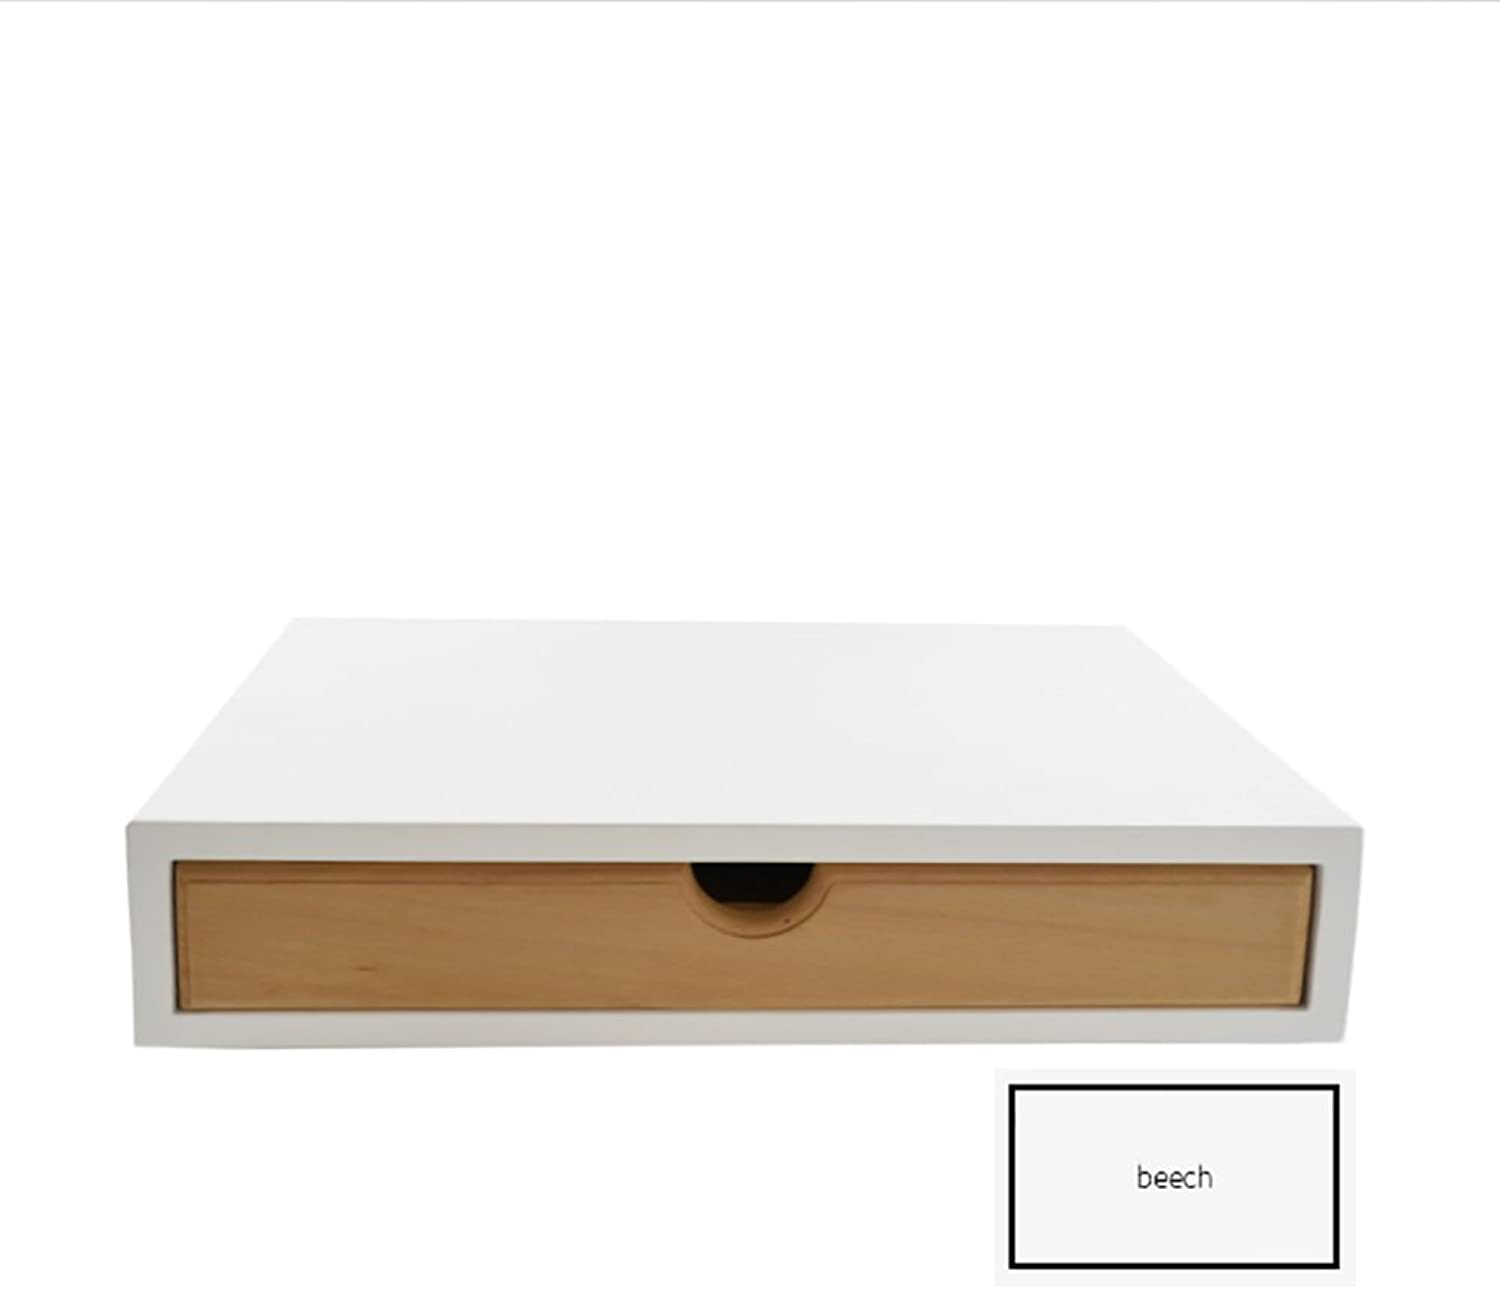 Organizer Holder Storage Drawers Decorative Wooden Drawers with Japanese Style Design 1 Drawer (color   Beech)